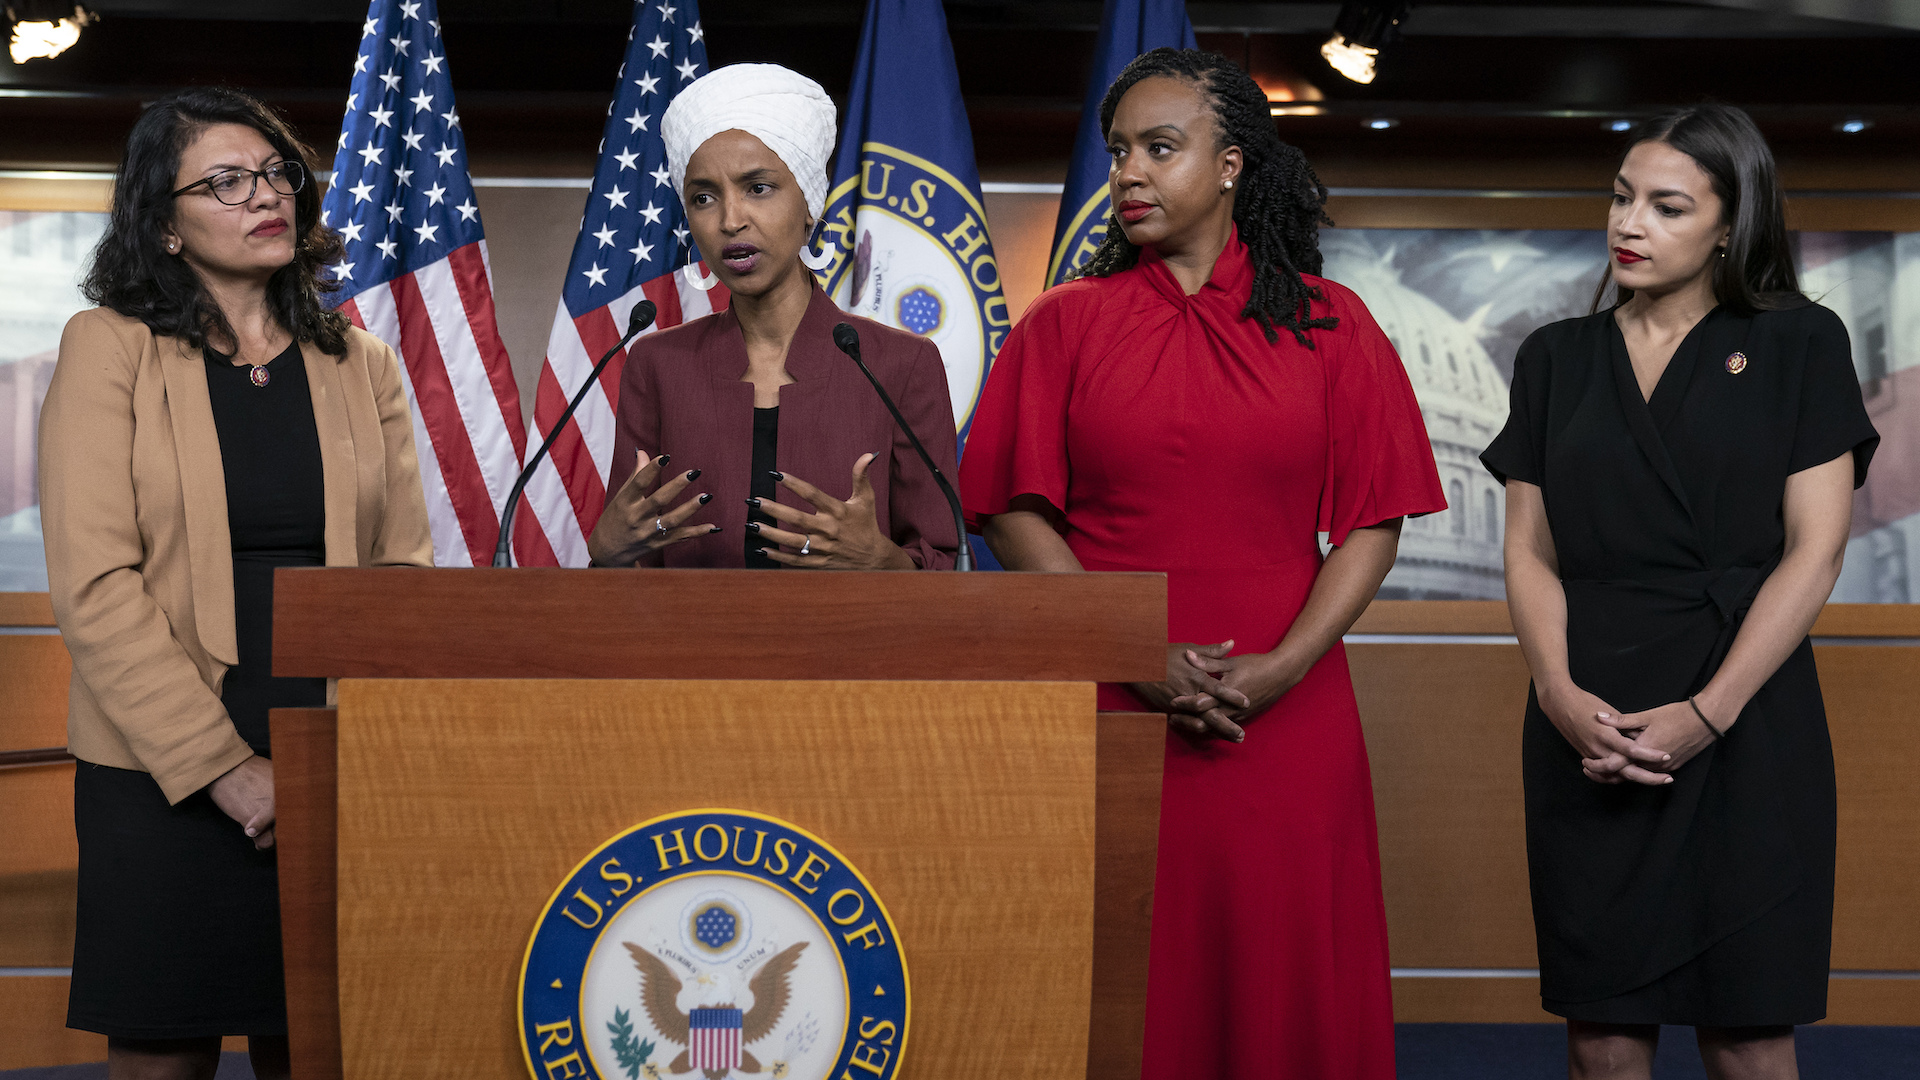 Trump calls on minority congresswomen to apologize after he said they should 'go back' to their countries